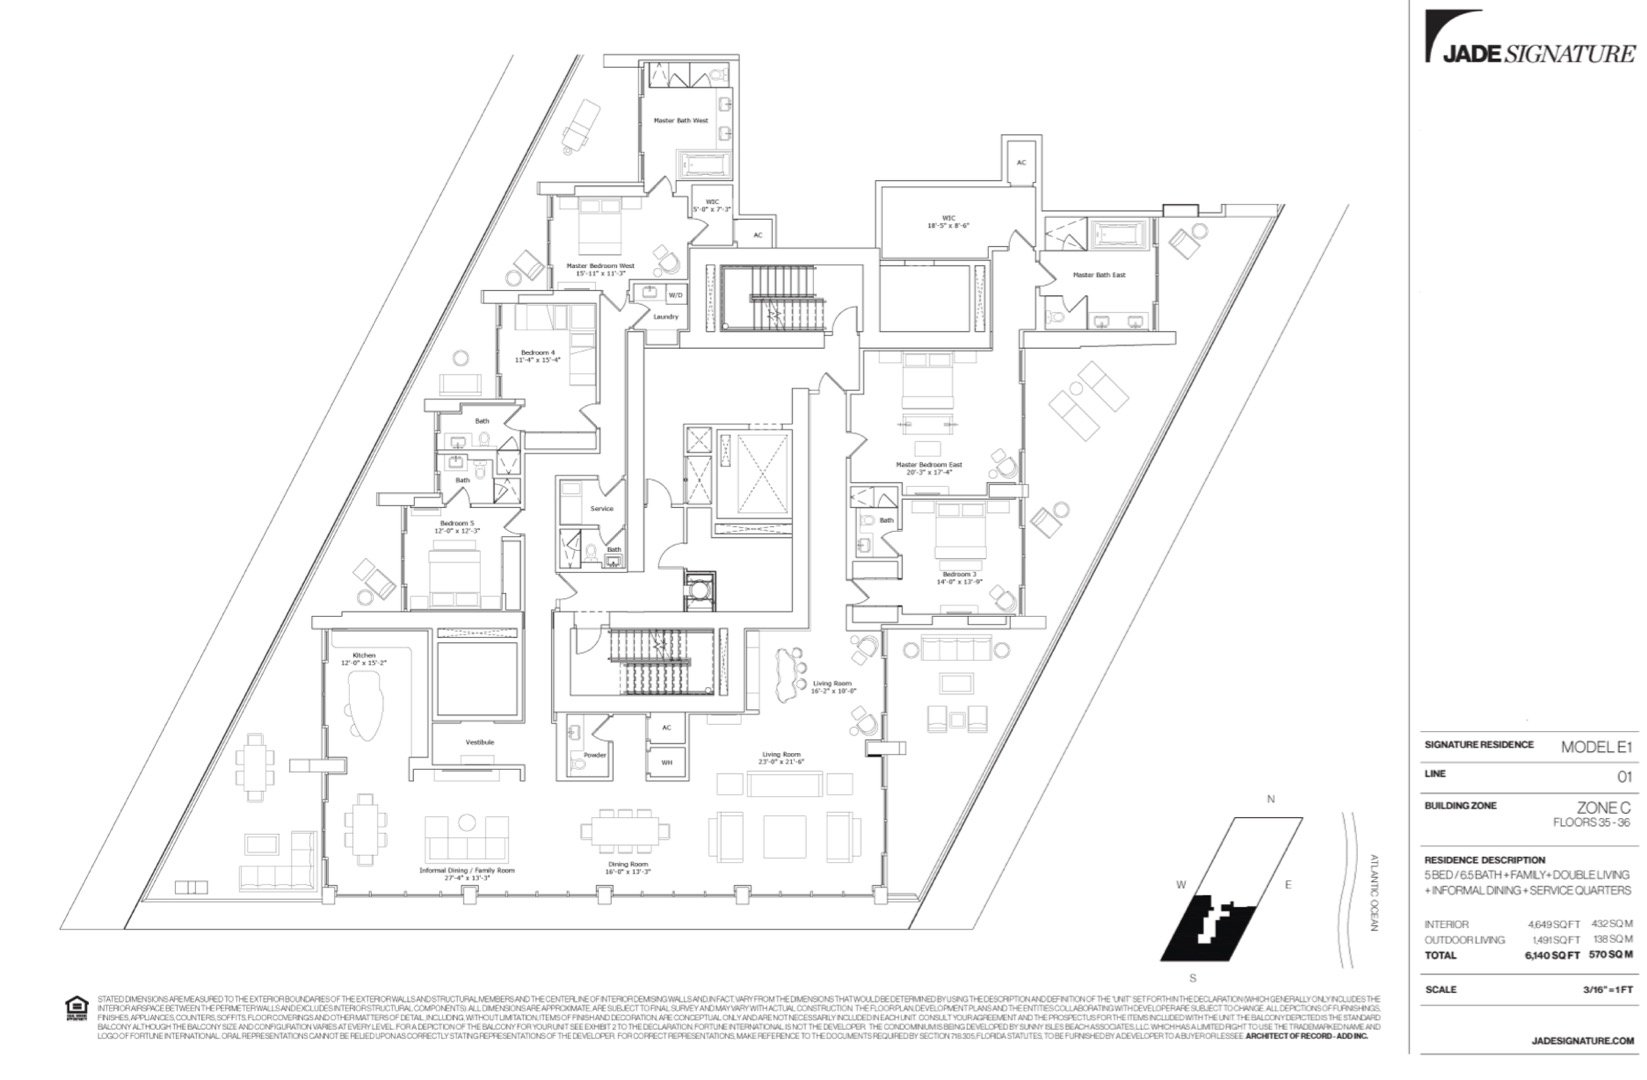 Floor plan image E1 - 5/6.5/Family/DoubleLiving/InformalDining/Service  - 4649 sqft image